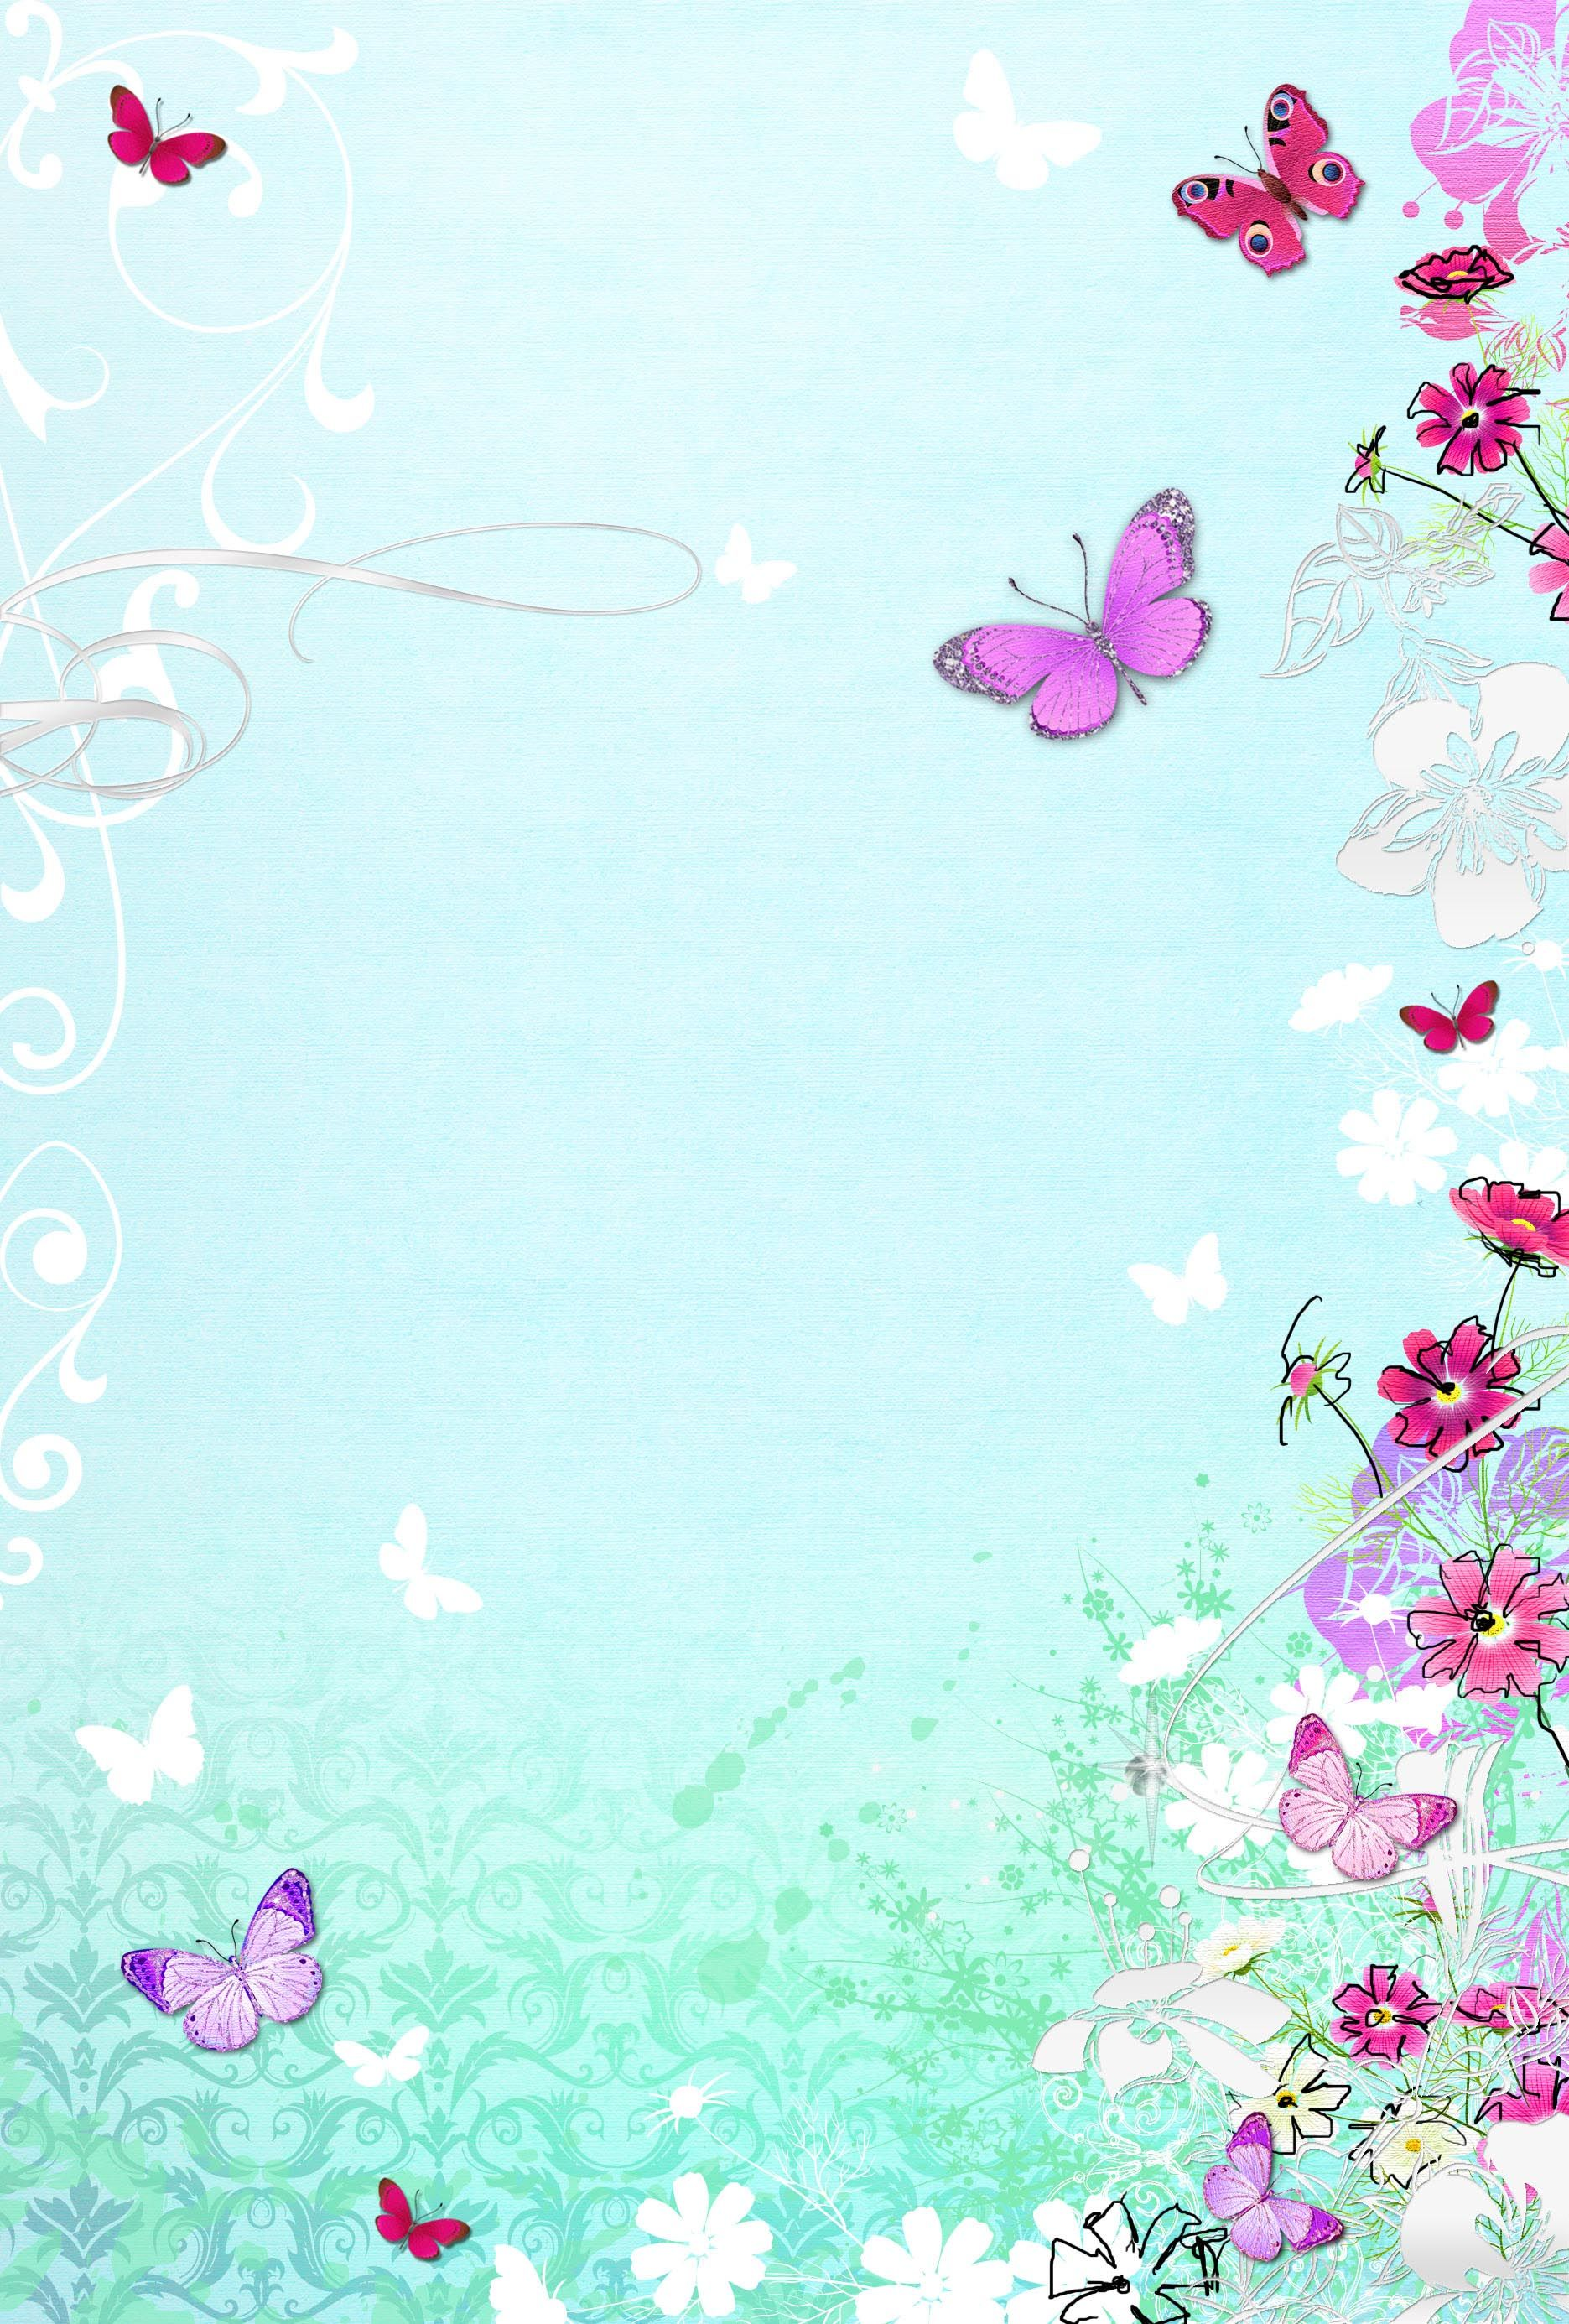 butterfliesonblue Butterfly wallpaper, Butterfly art